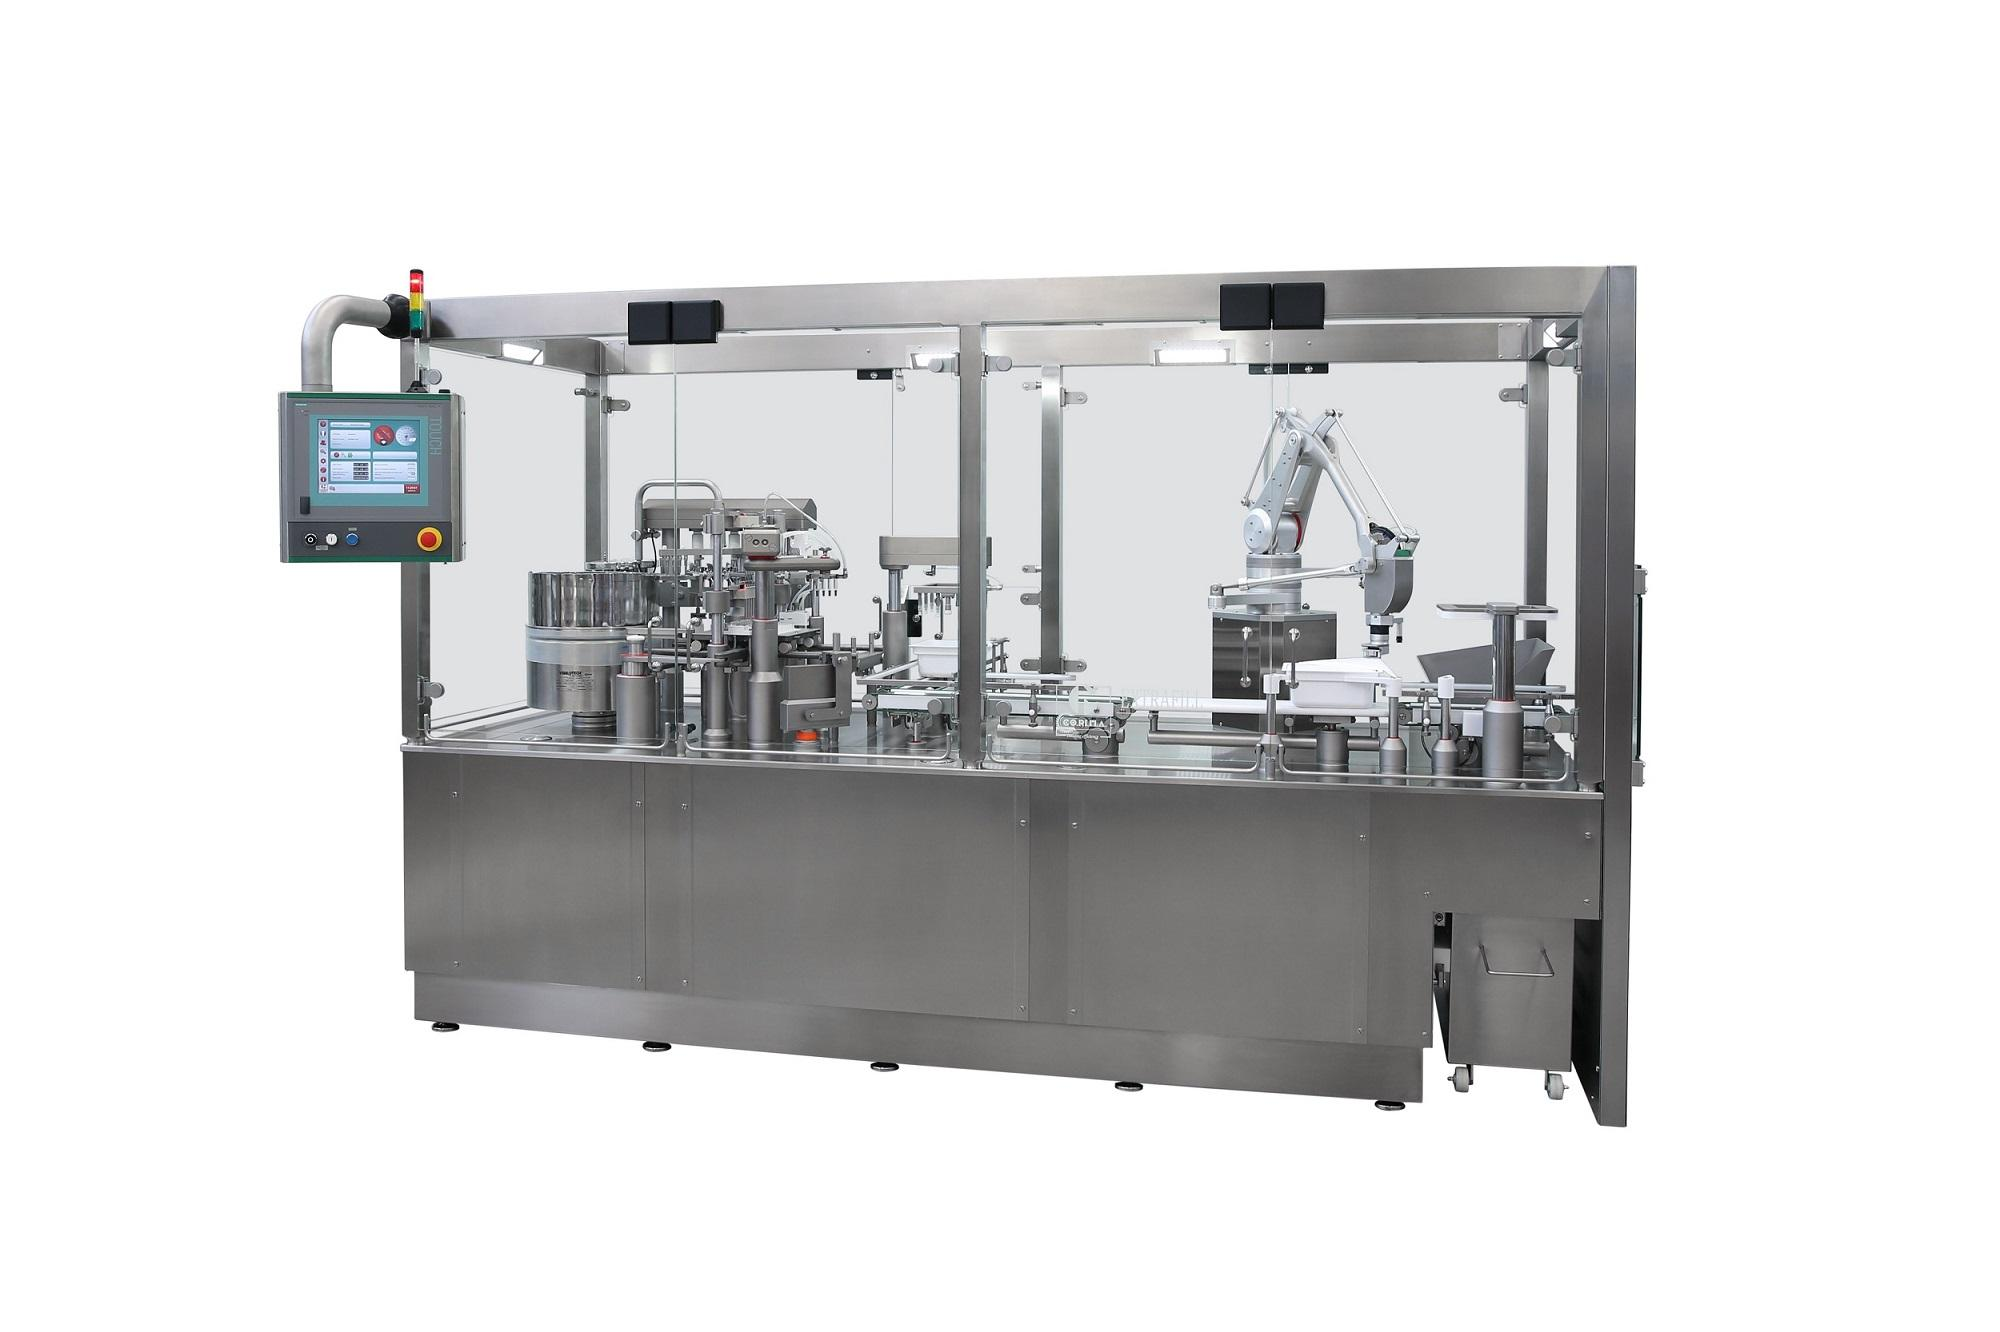 PHARMTECH 2019: THE MARCHESINI GROUP SHOWS THREE STAND-ALONE MACHINES